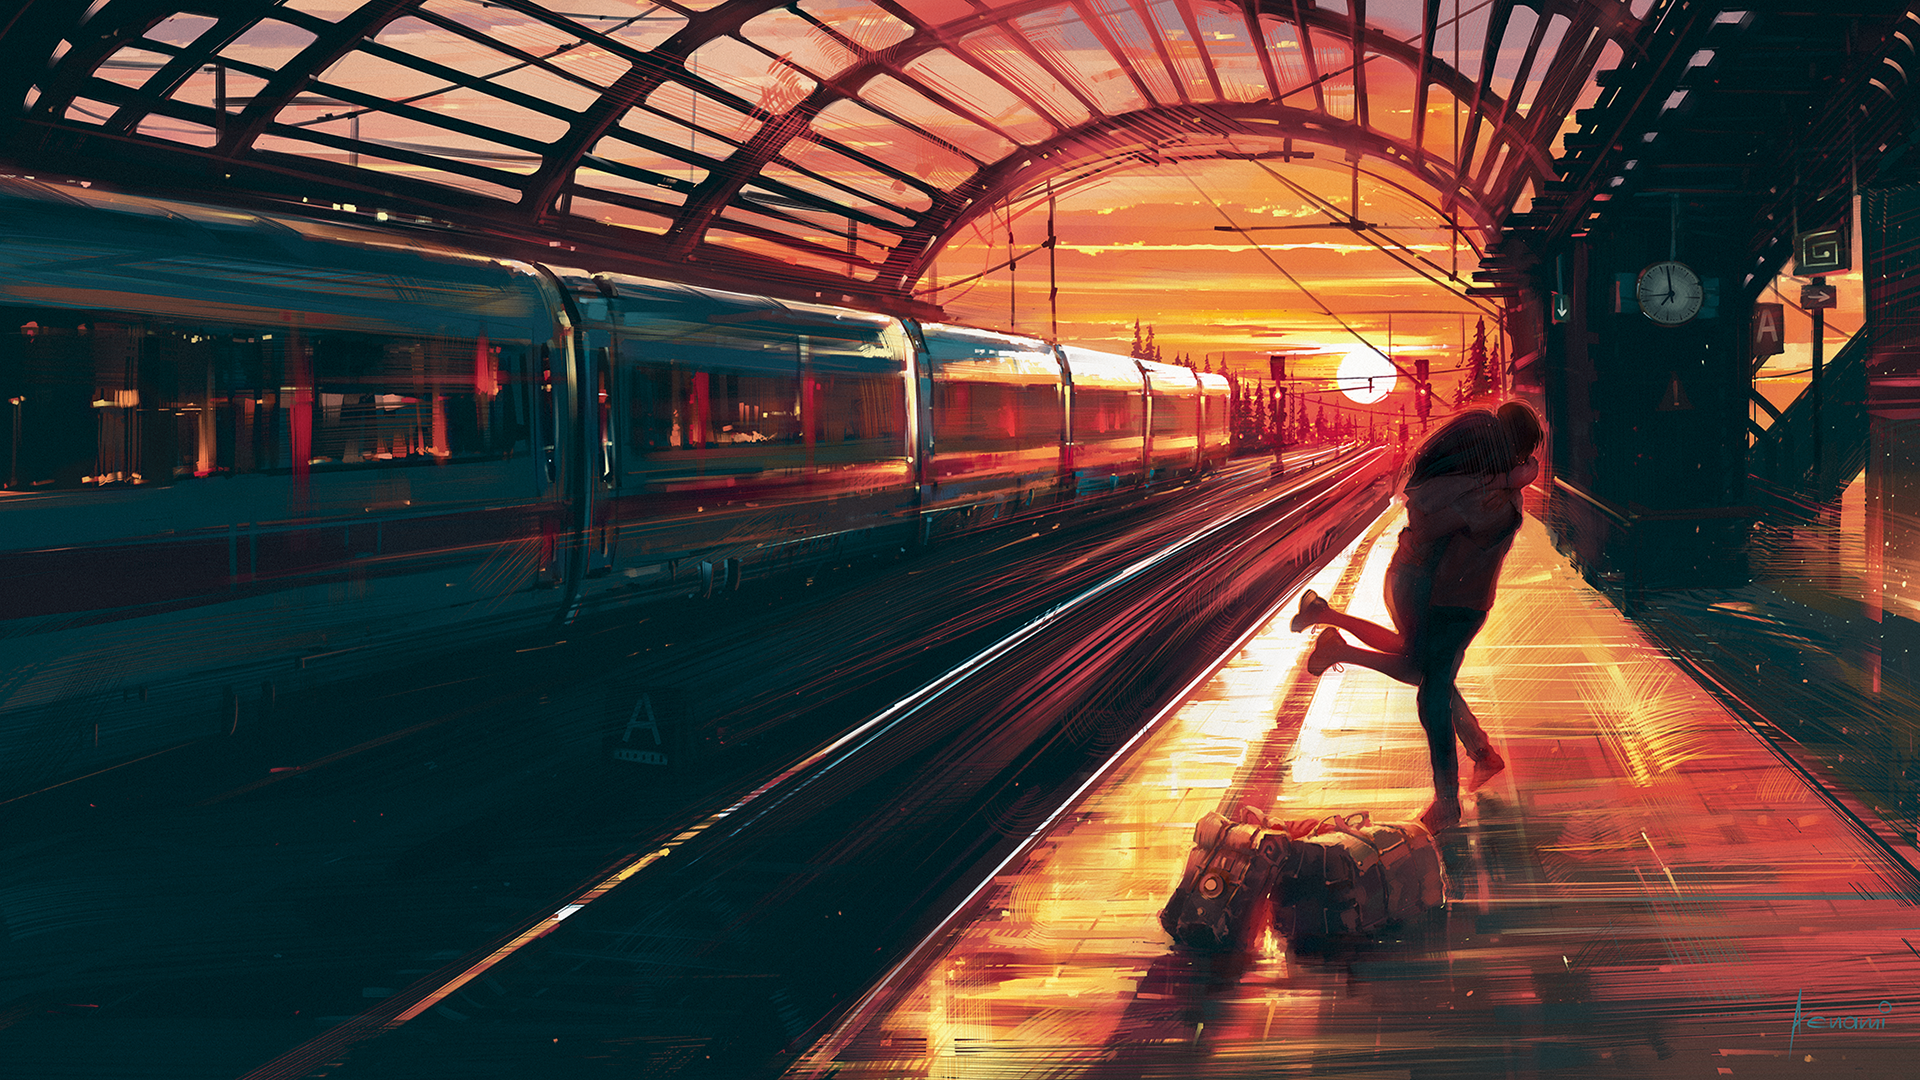 Artistic - Love  Couple Train Train Station Sunset Wallpaper